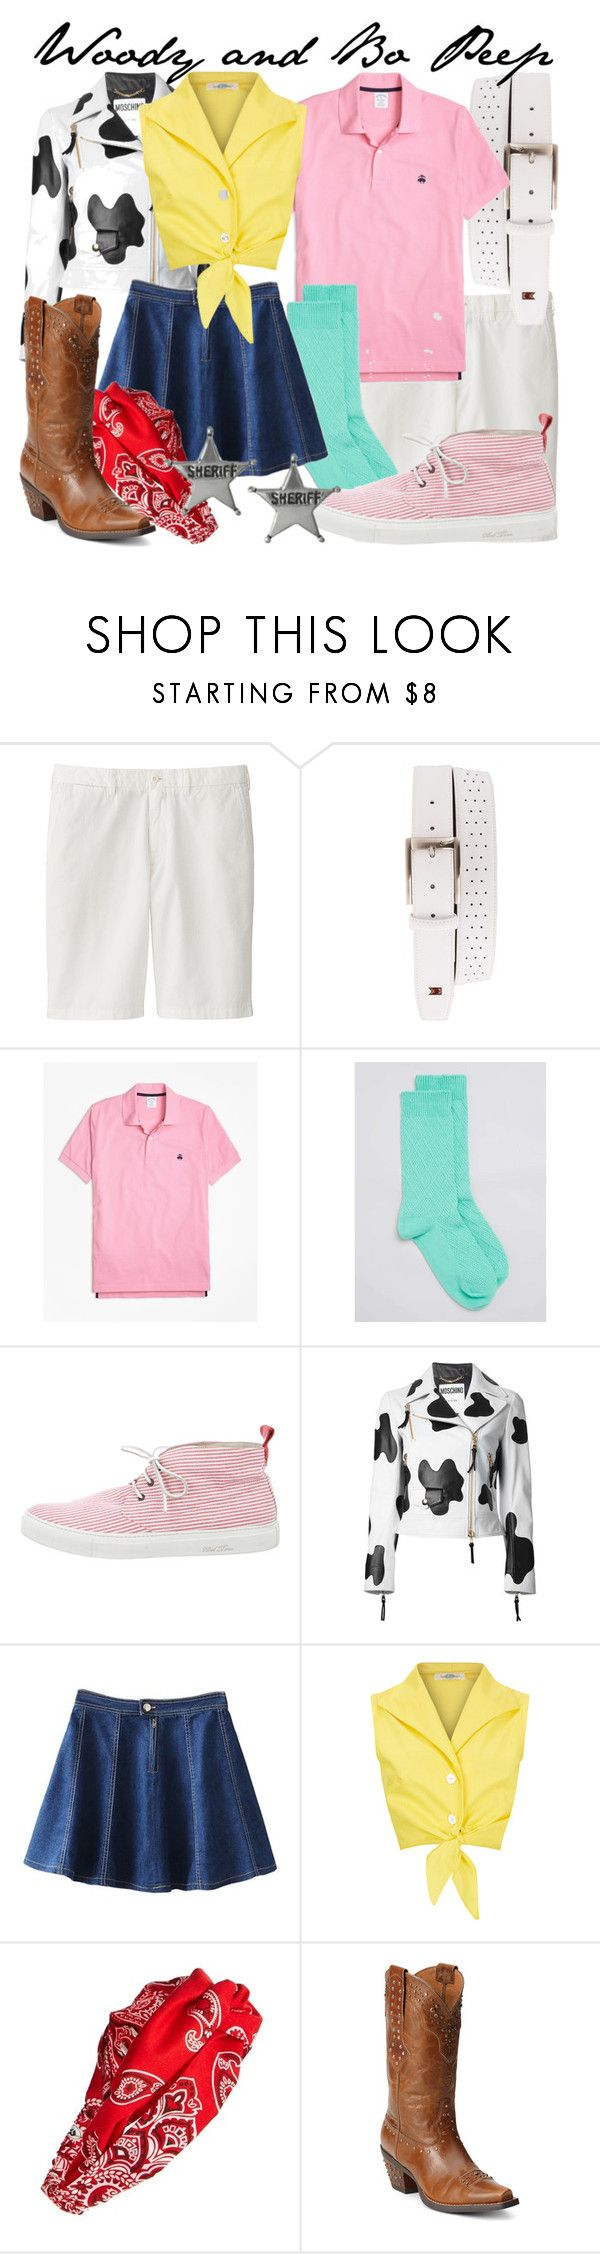 """""""Woody and Bo Peep Genderbent"""" by fabulousgurl ❤ liked on Polyvore featuring Uniqlo, NIKE, Brooks Brothers, Topman, Del Toro, Moschino, Cara, Ariat, Journee Collection and toystory"""